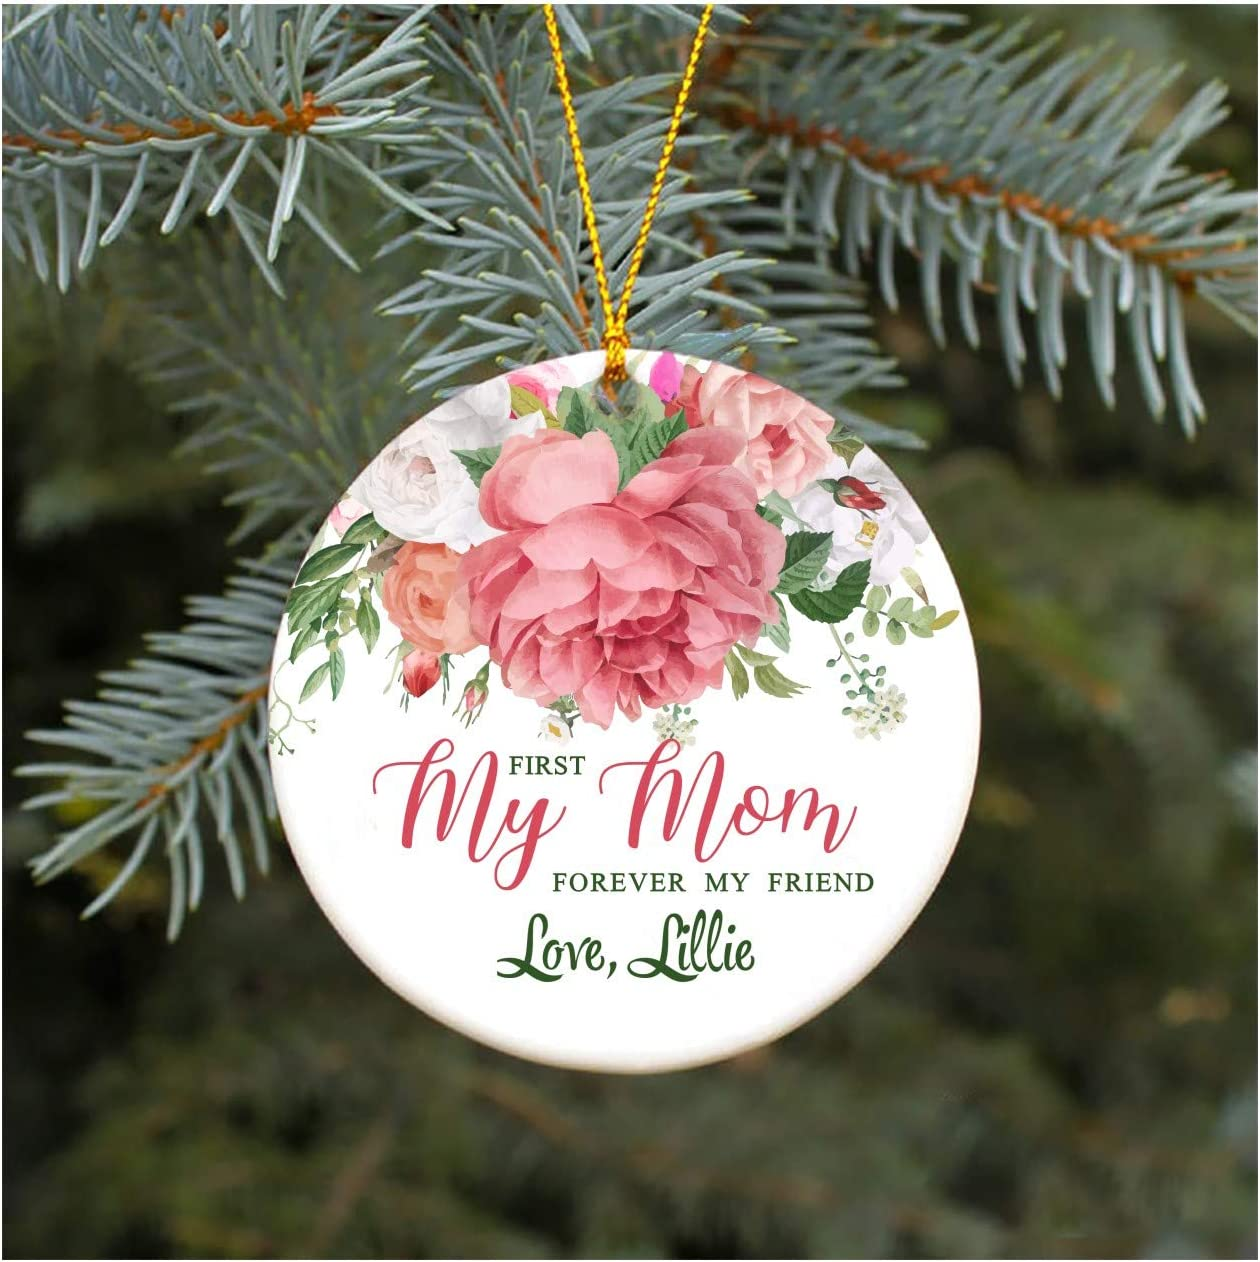 Amazon Com Christmas Ornament Tree 2020 First My Mom Forever My Friend Love Lillie Xmas Gift Ideas For Mom From Daughter Mother In Law Gifts Present 3 Flat Circle Mdf Plastic Kitchen